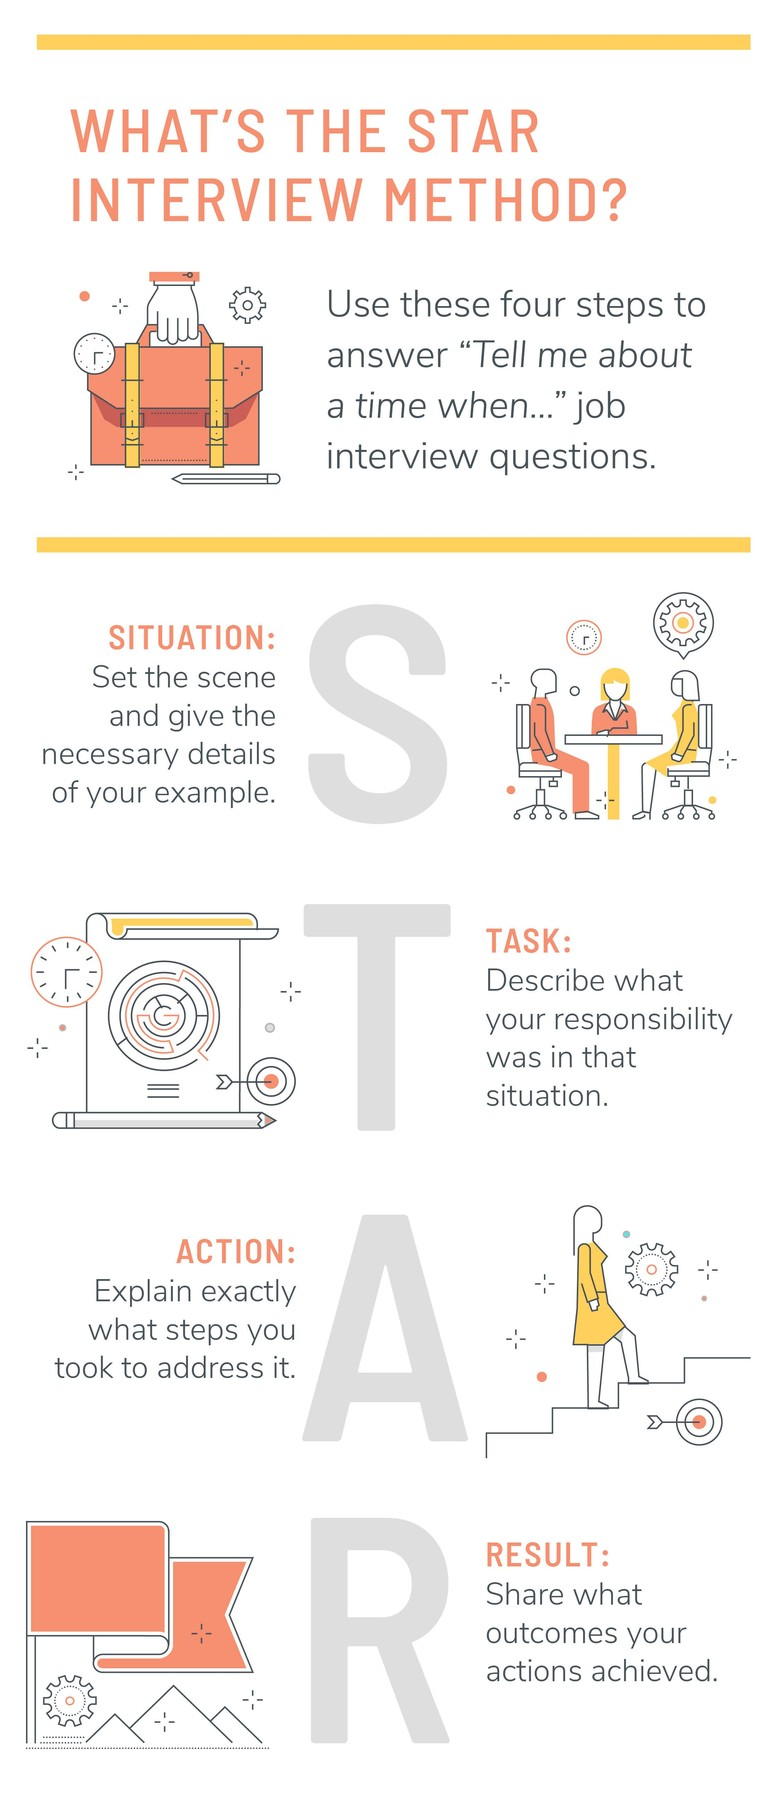 How To Use The Star Method To Ace Your Job Interview The Muse